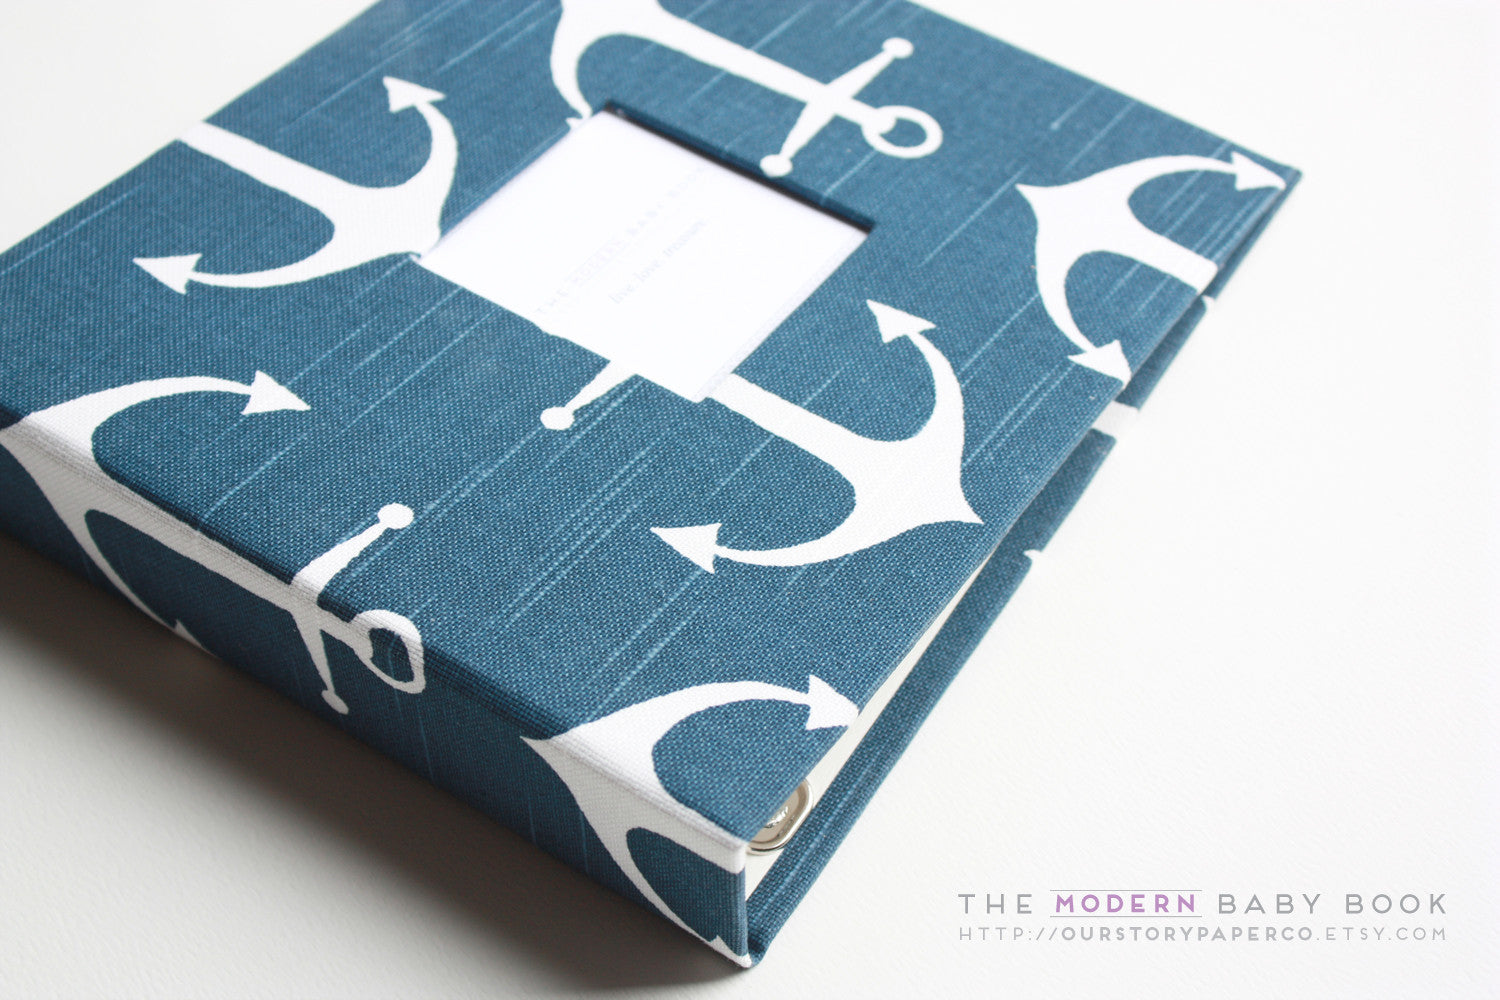 Navy Anchor Modern Baby Book - Our Story Paper Co.